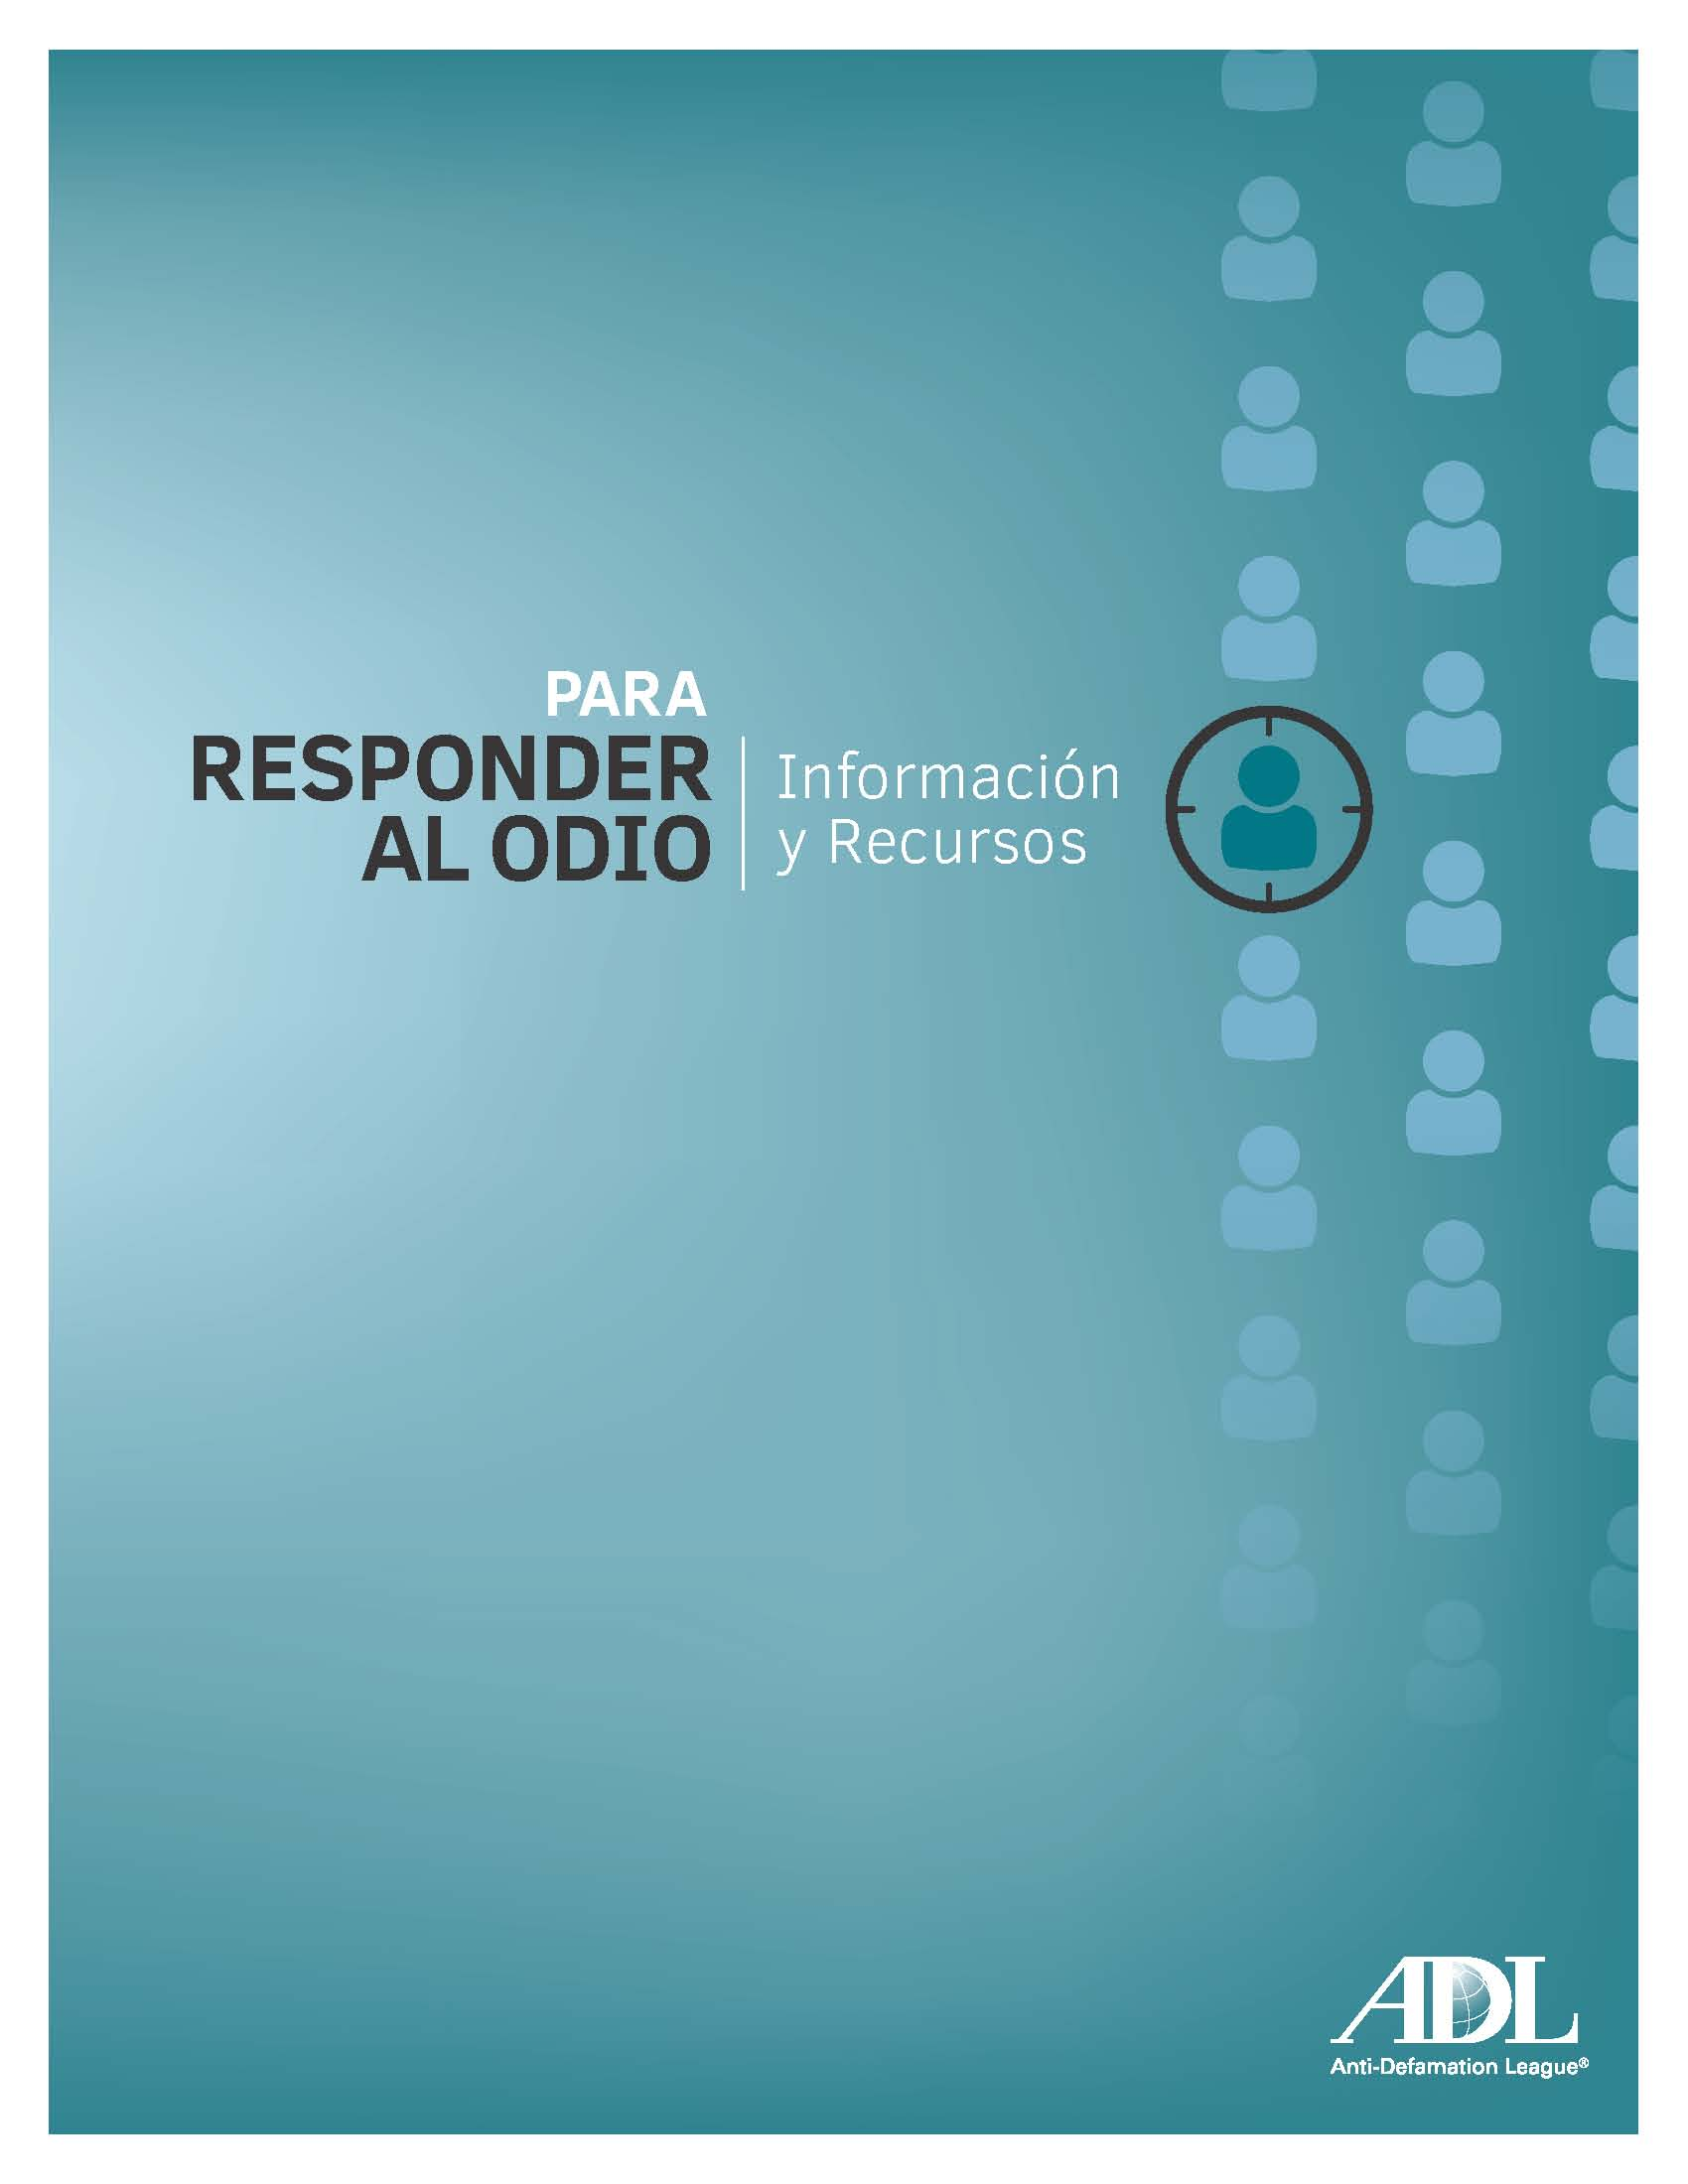 Responding to Hate: Information and Resources - Spanish Version THUMBNAIL